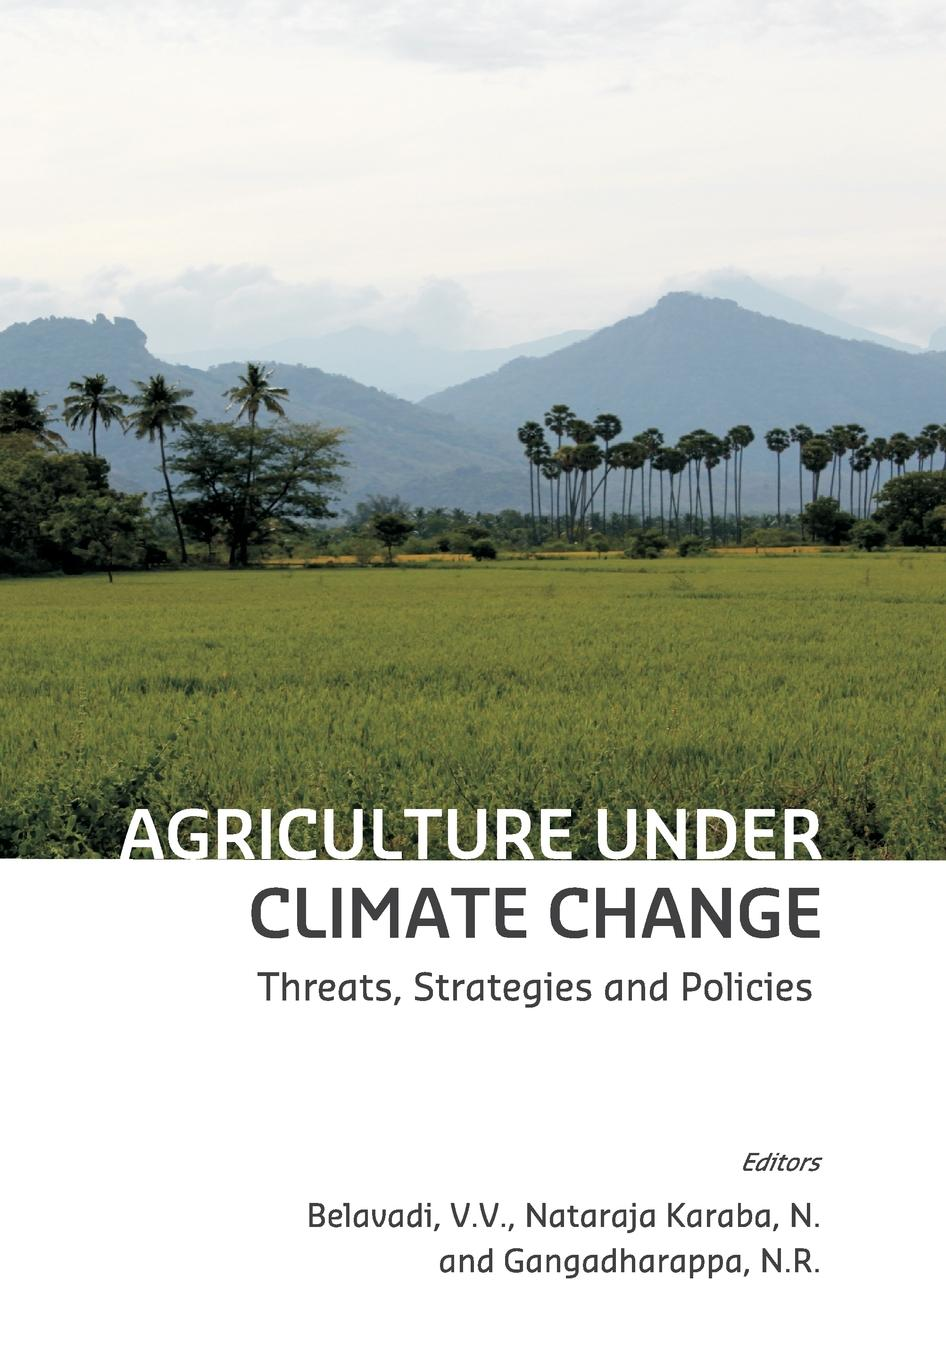 Agriculture under Climate Change. Threats, Strategies and Policies economic adaptation to climate change